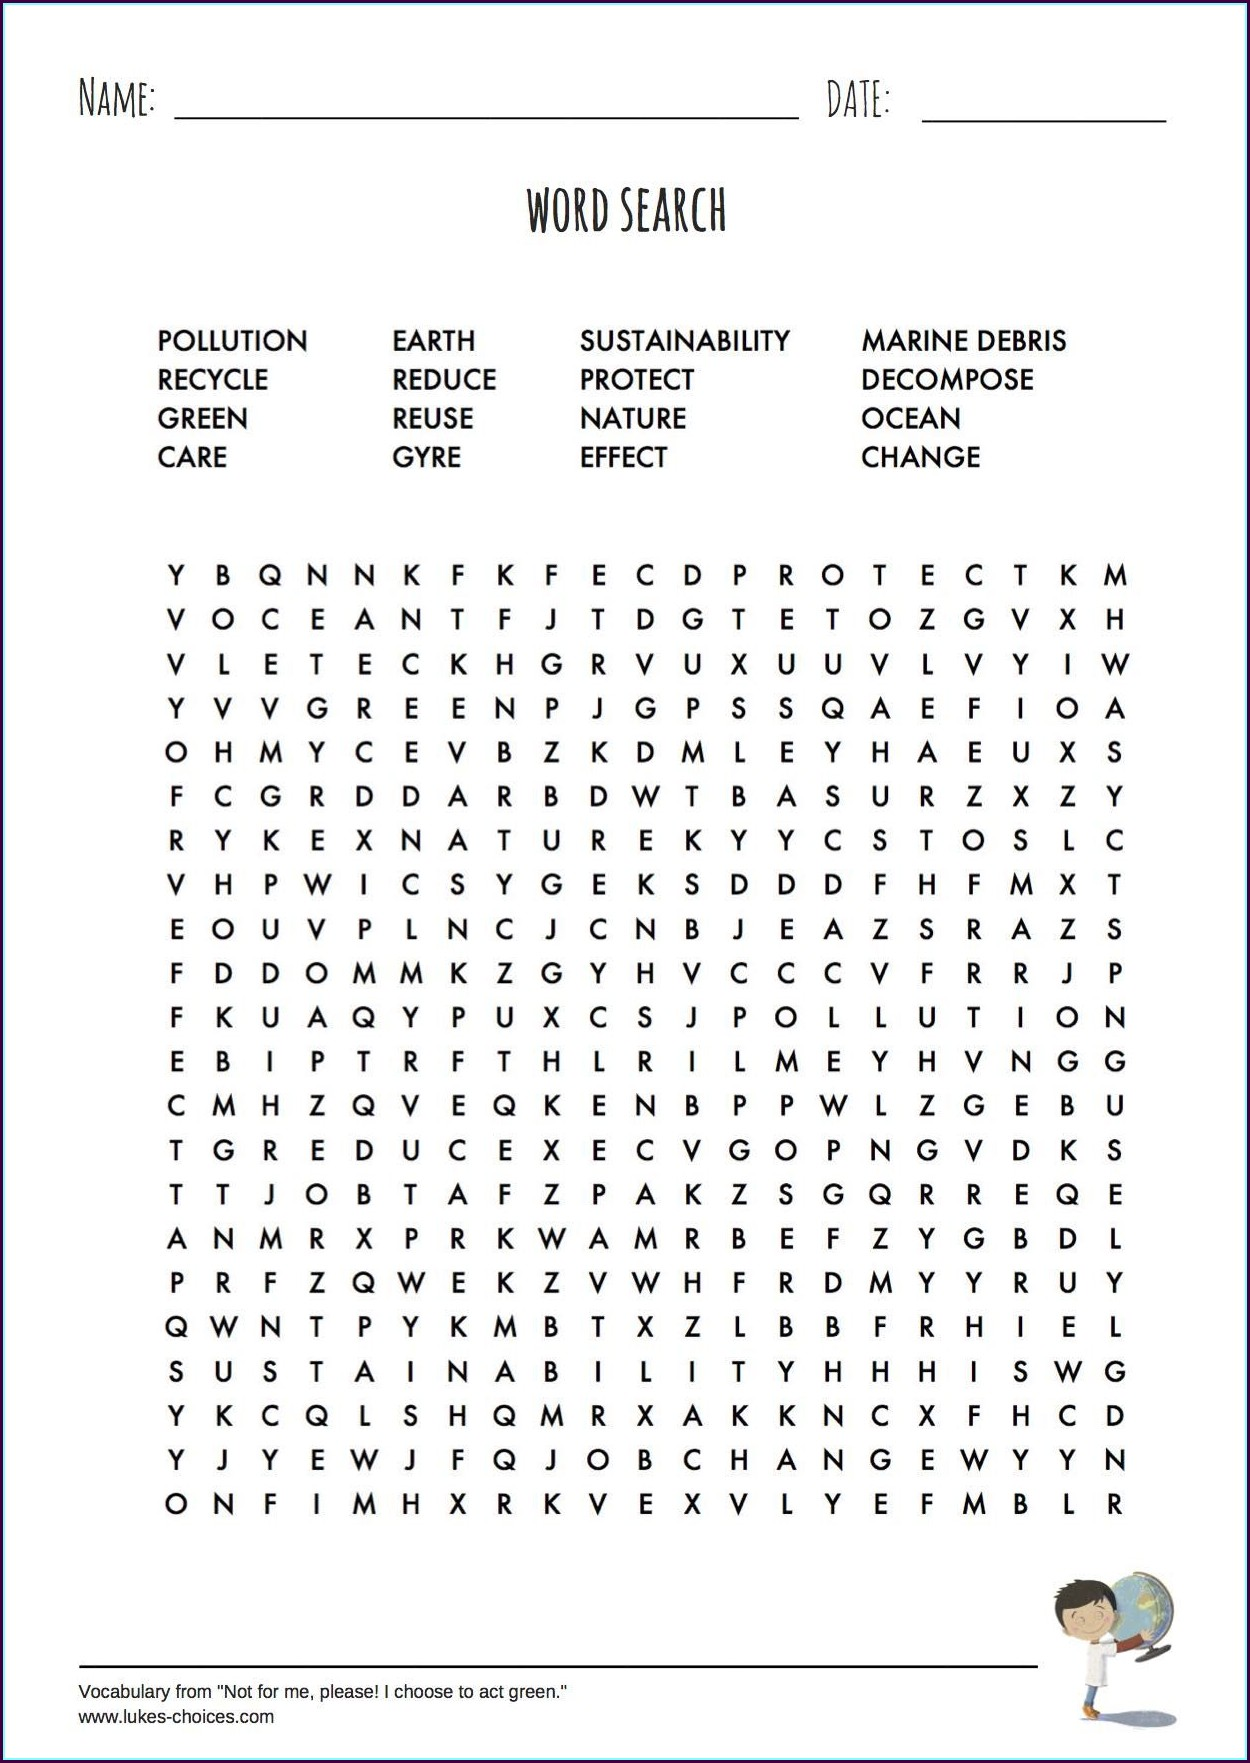 Printable Word Search For Earth Day